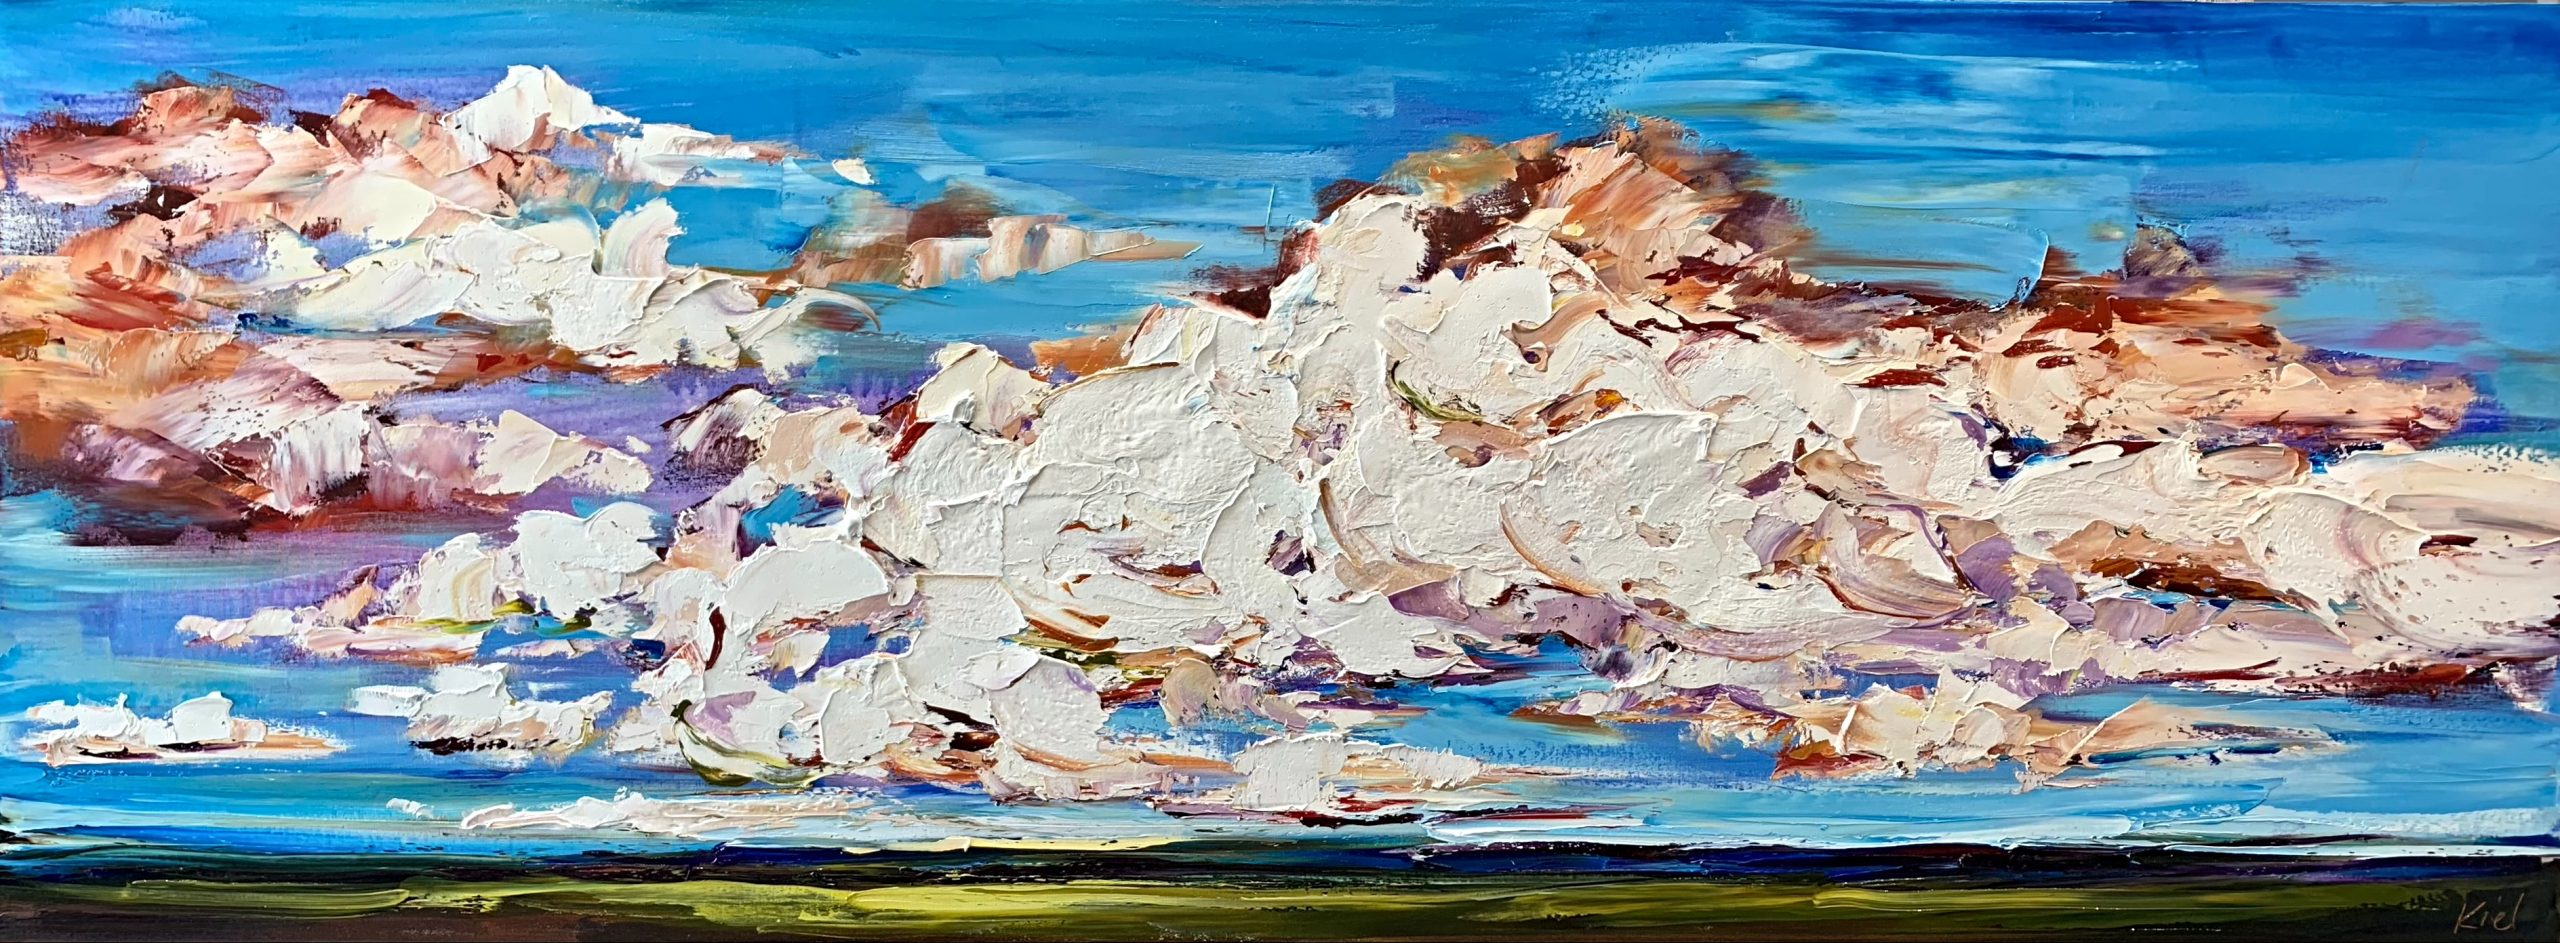 Bring on the Wonder, landscape painting by Kimberly Kiel   Effusion Art Gallery + Cast Glass Studio, Invermere BC